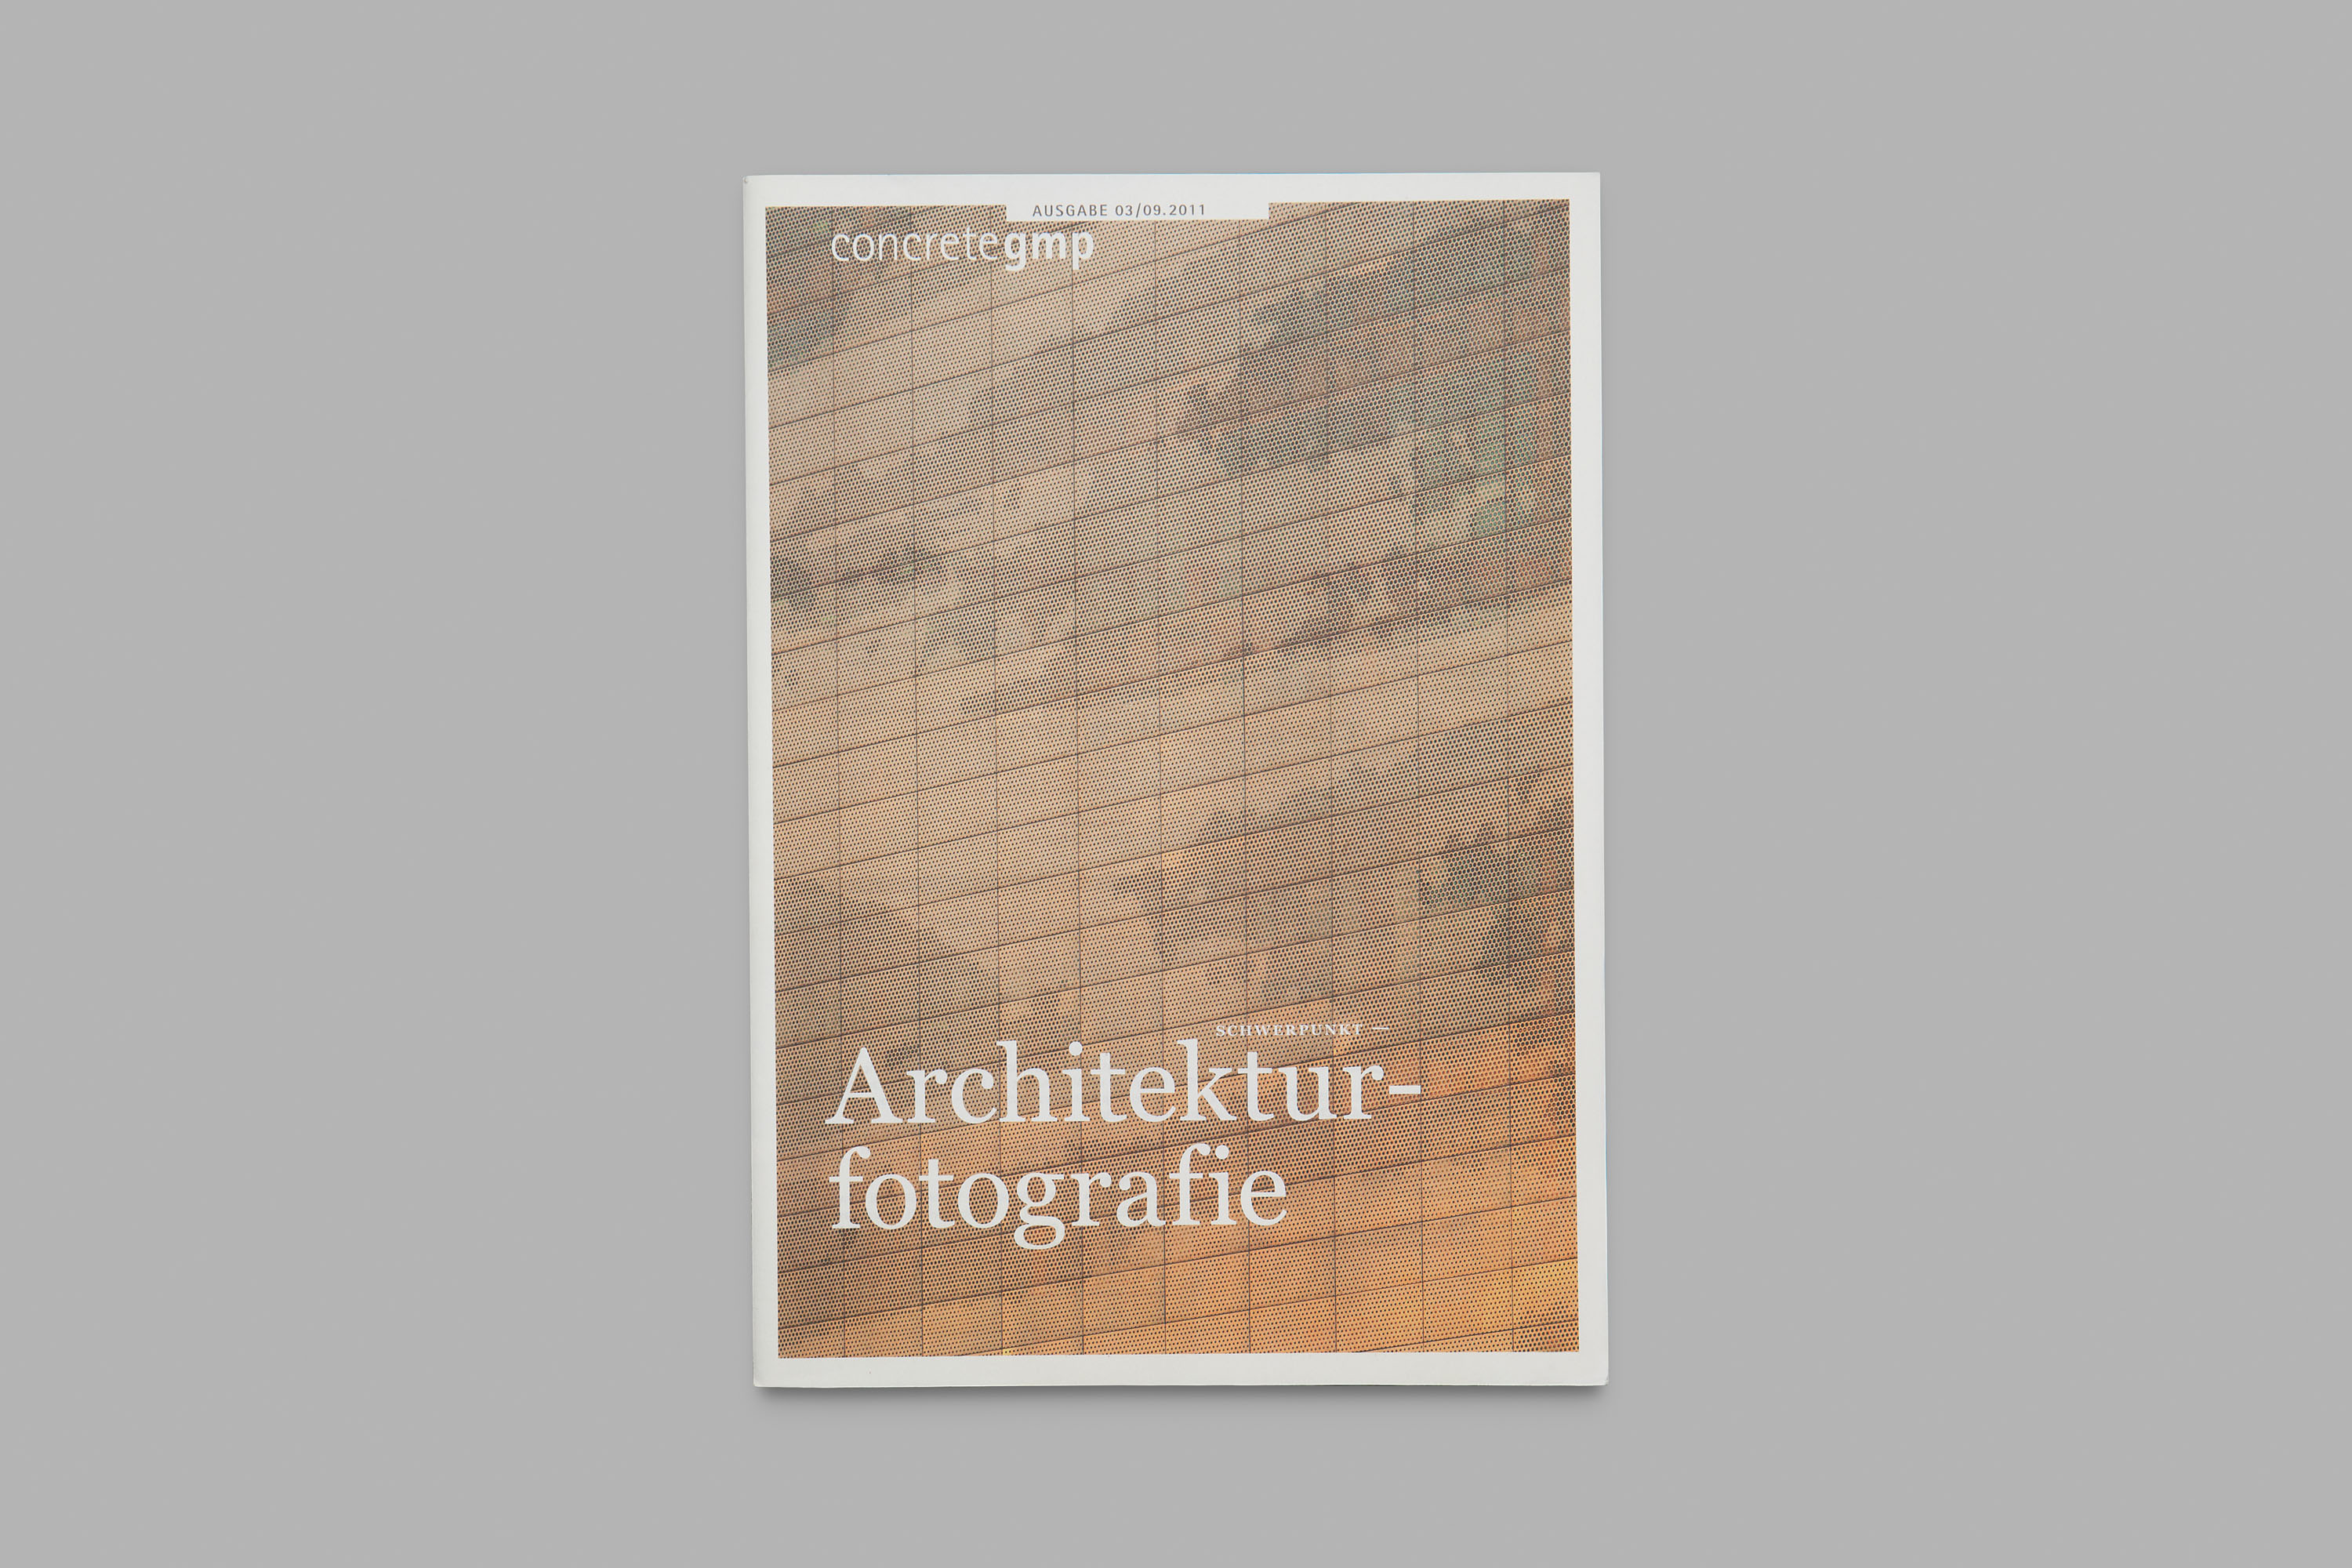 Zukunftsperspektiven – concretegmp, architecture, aac, Academy for Architectural Culture, ON Grafik, wibberenz' design